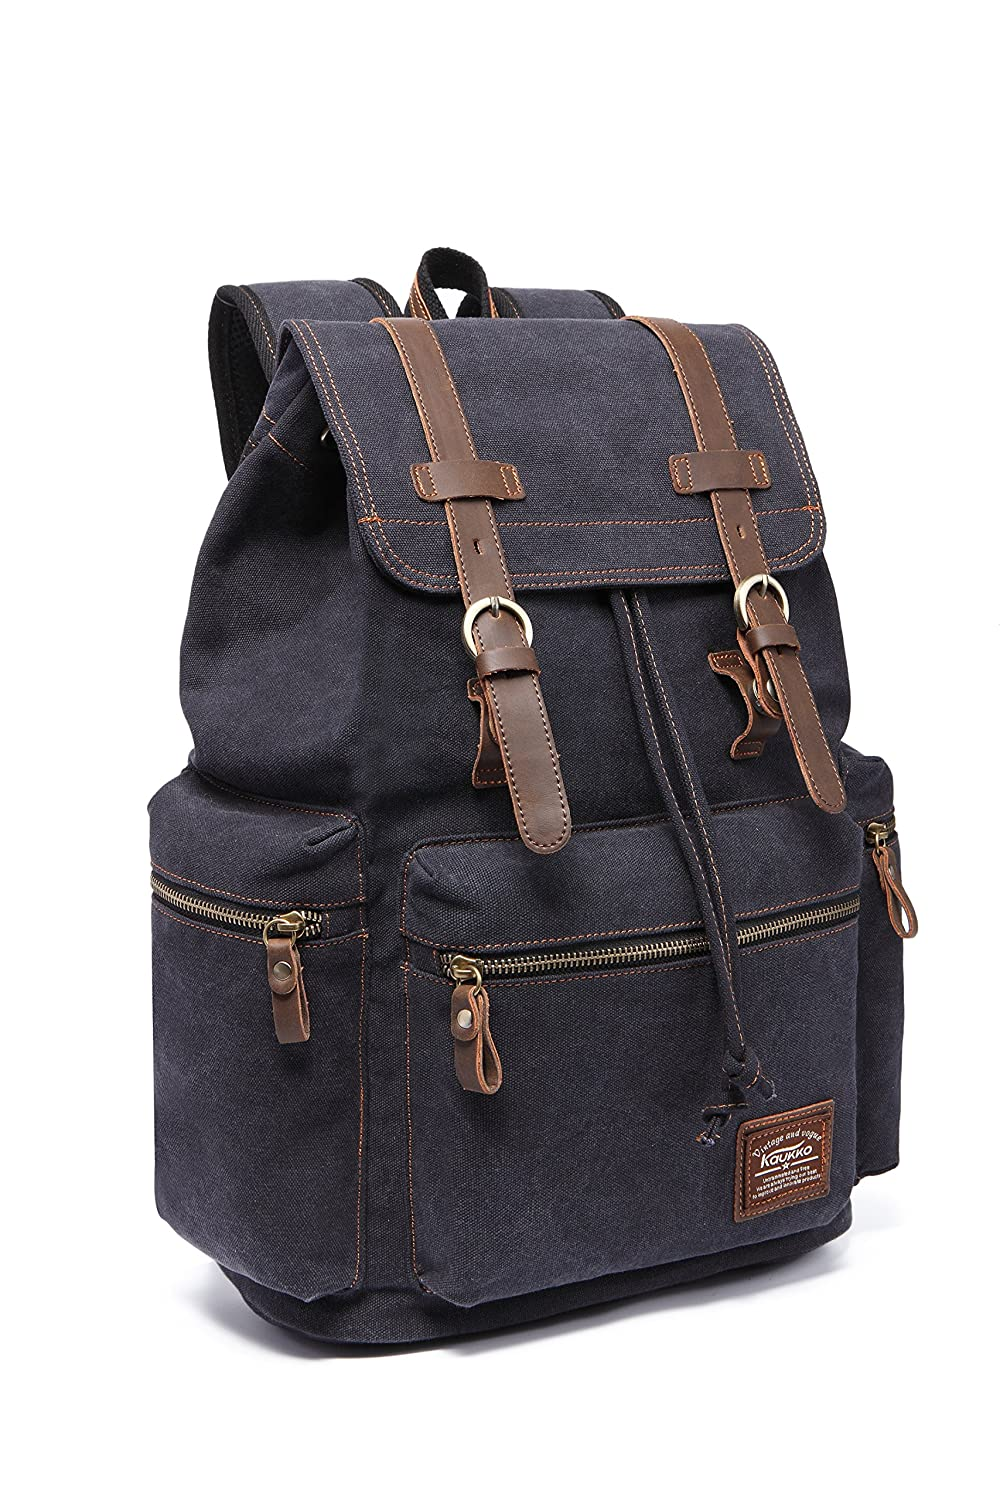 cc017bd6e Amazon.com: KAUKKO Canvas Vintage Backpack Casual Backpack School Leather  Rucksack Outdoor Travel Backpack(Black-1): Computers & Accessories